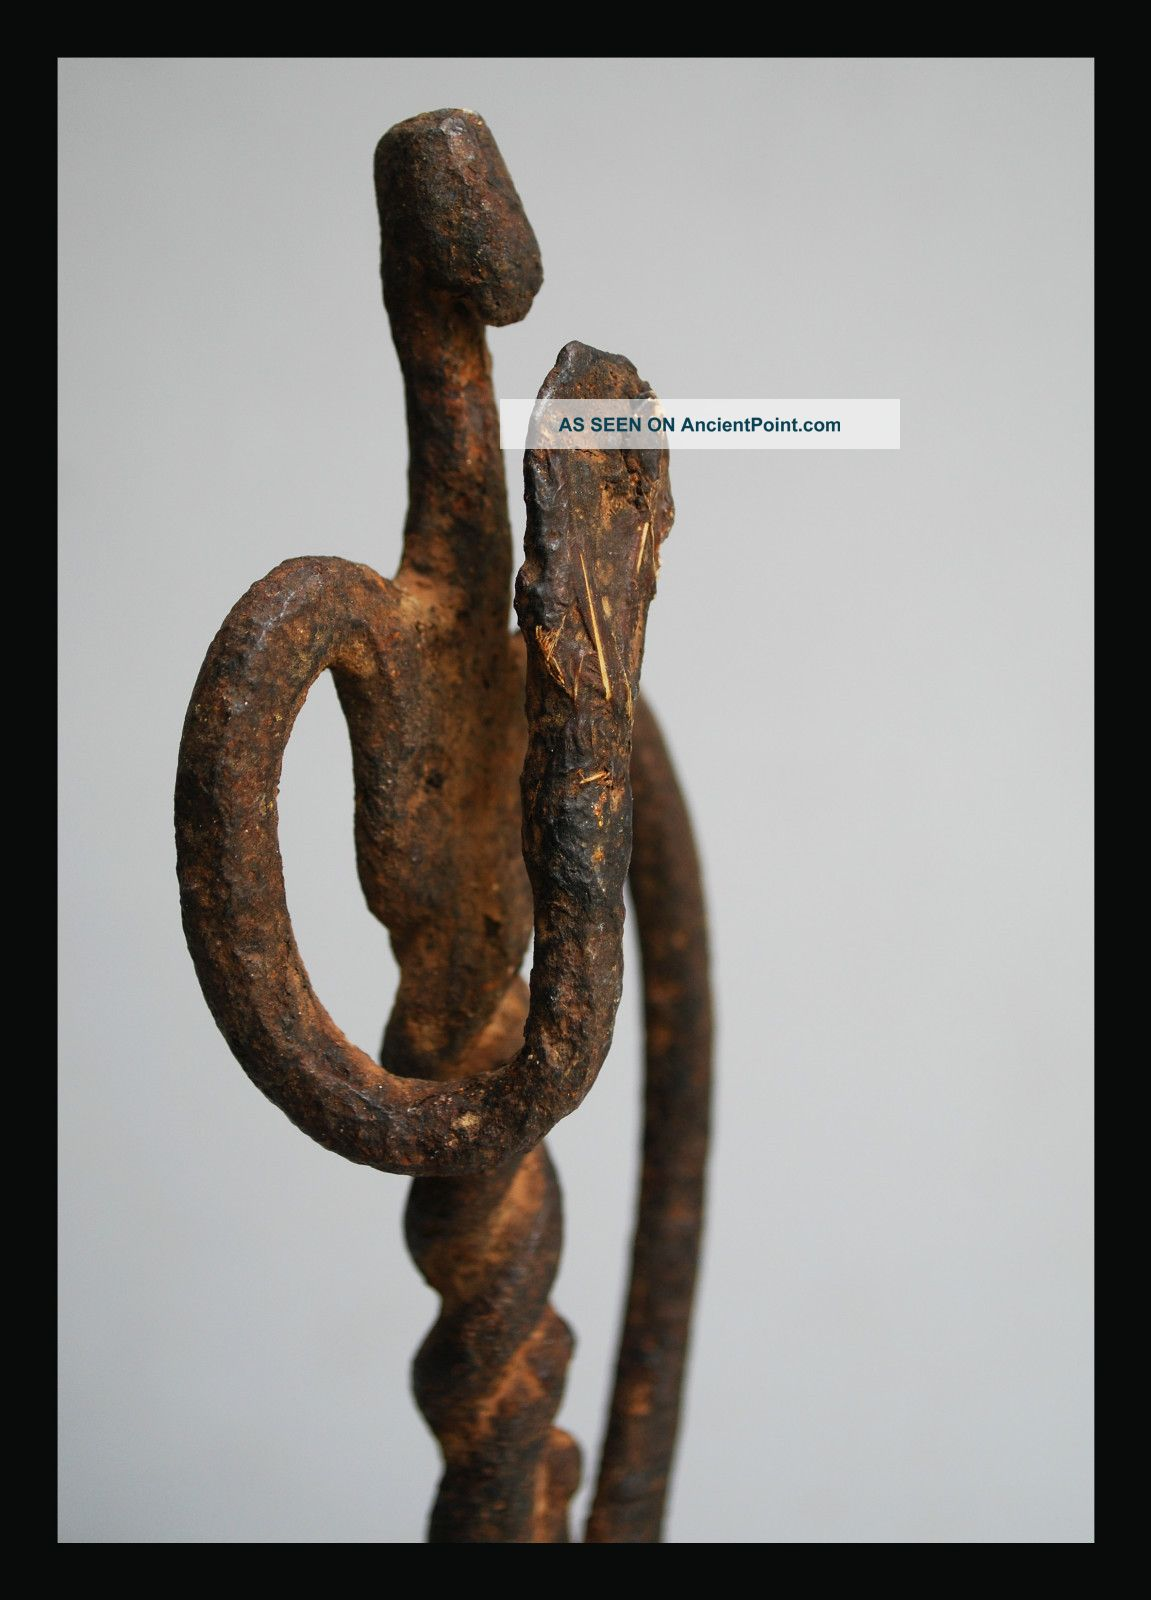 A Tall + Artistic Iron Figure From Lobi Tribe Of Burkina Faso Other photo